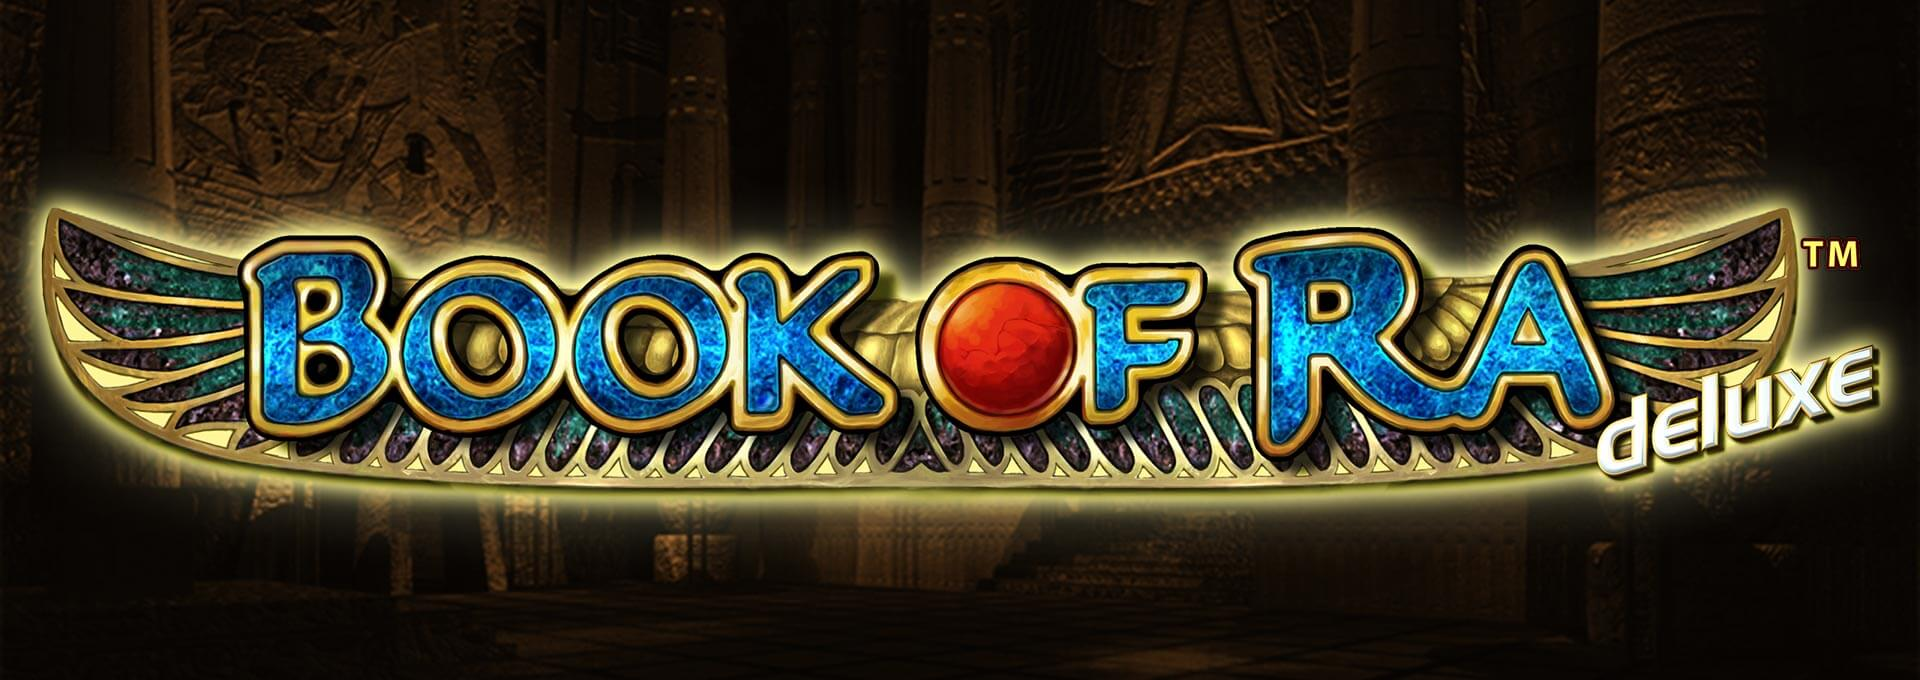 casino las vegas online spiele book of ra